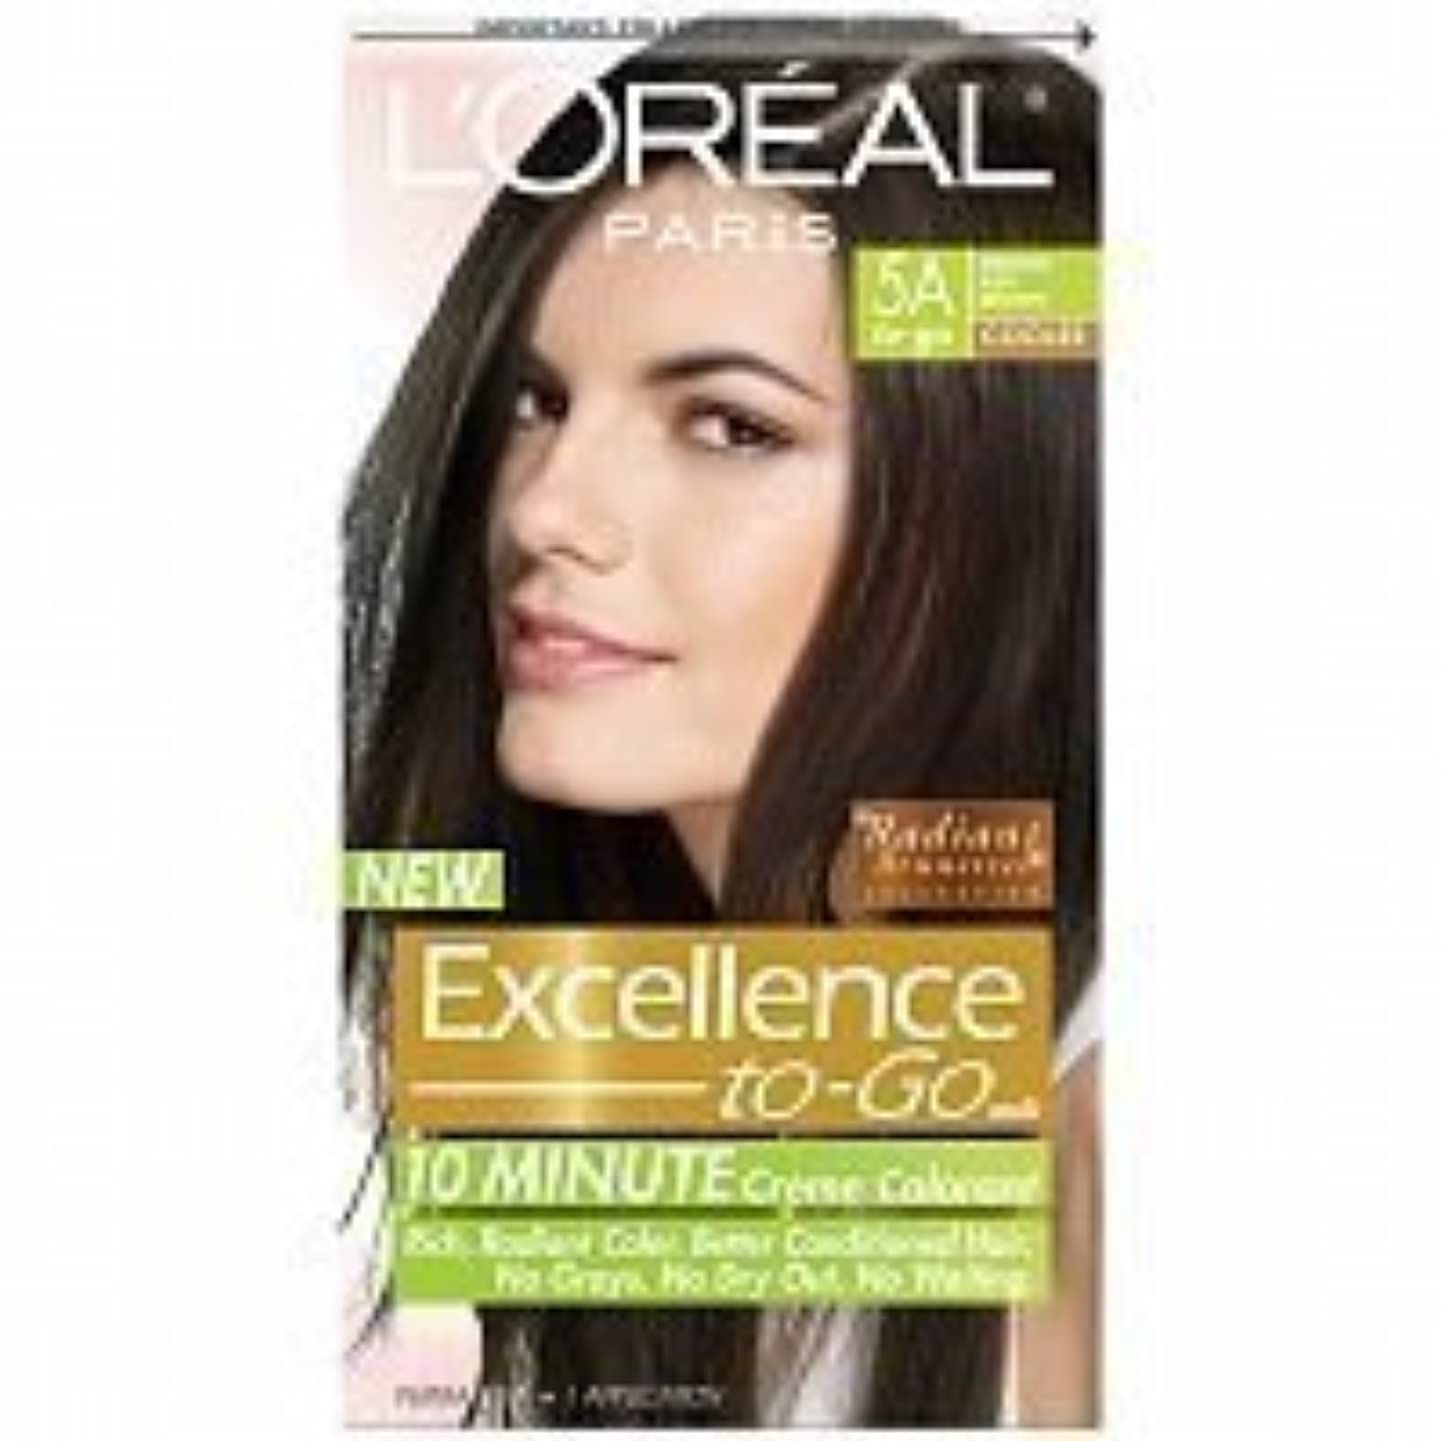 結婚式日食仕出しますL'Oreal Paris Excellence To-Go 10-Minute Cr?N?Nme Coloring, Medium Ash Brown 5A by L'Oreal Paris Hair Color [並行輸入品]